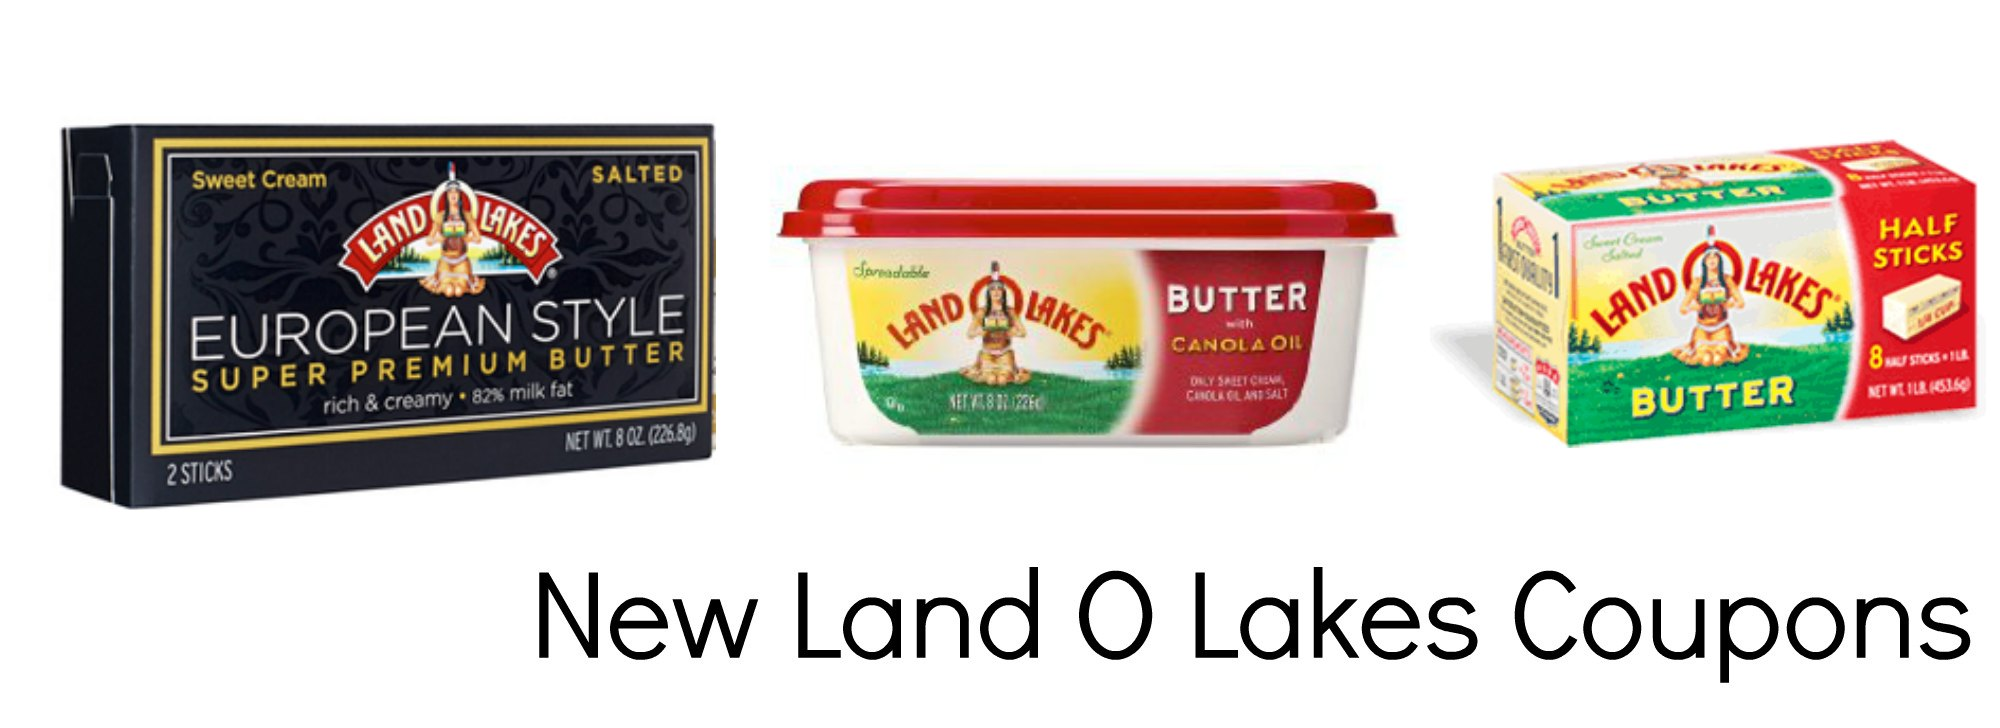 Land o lakes eggs coupon 2018